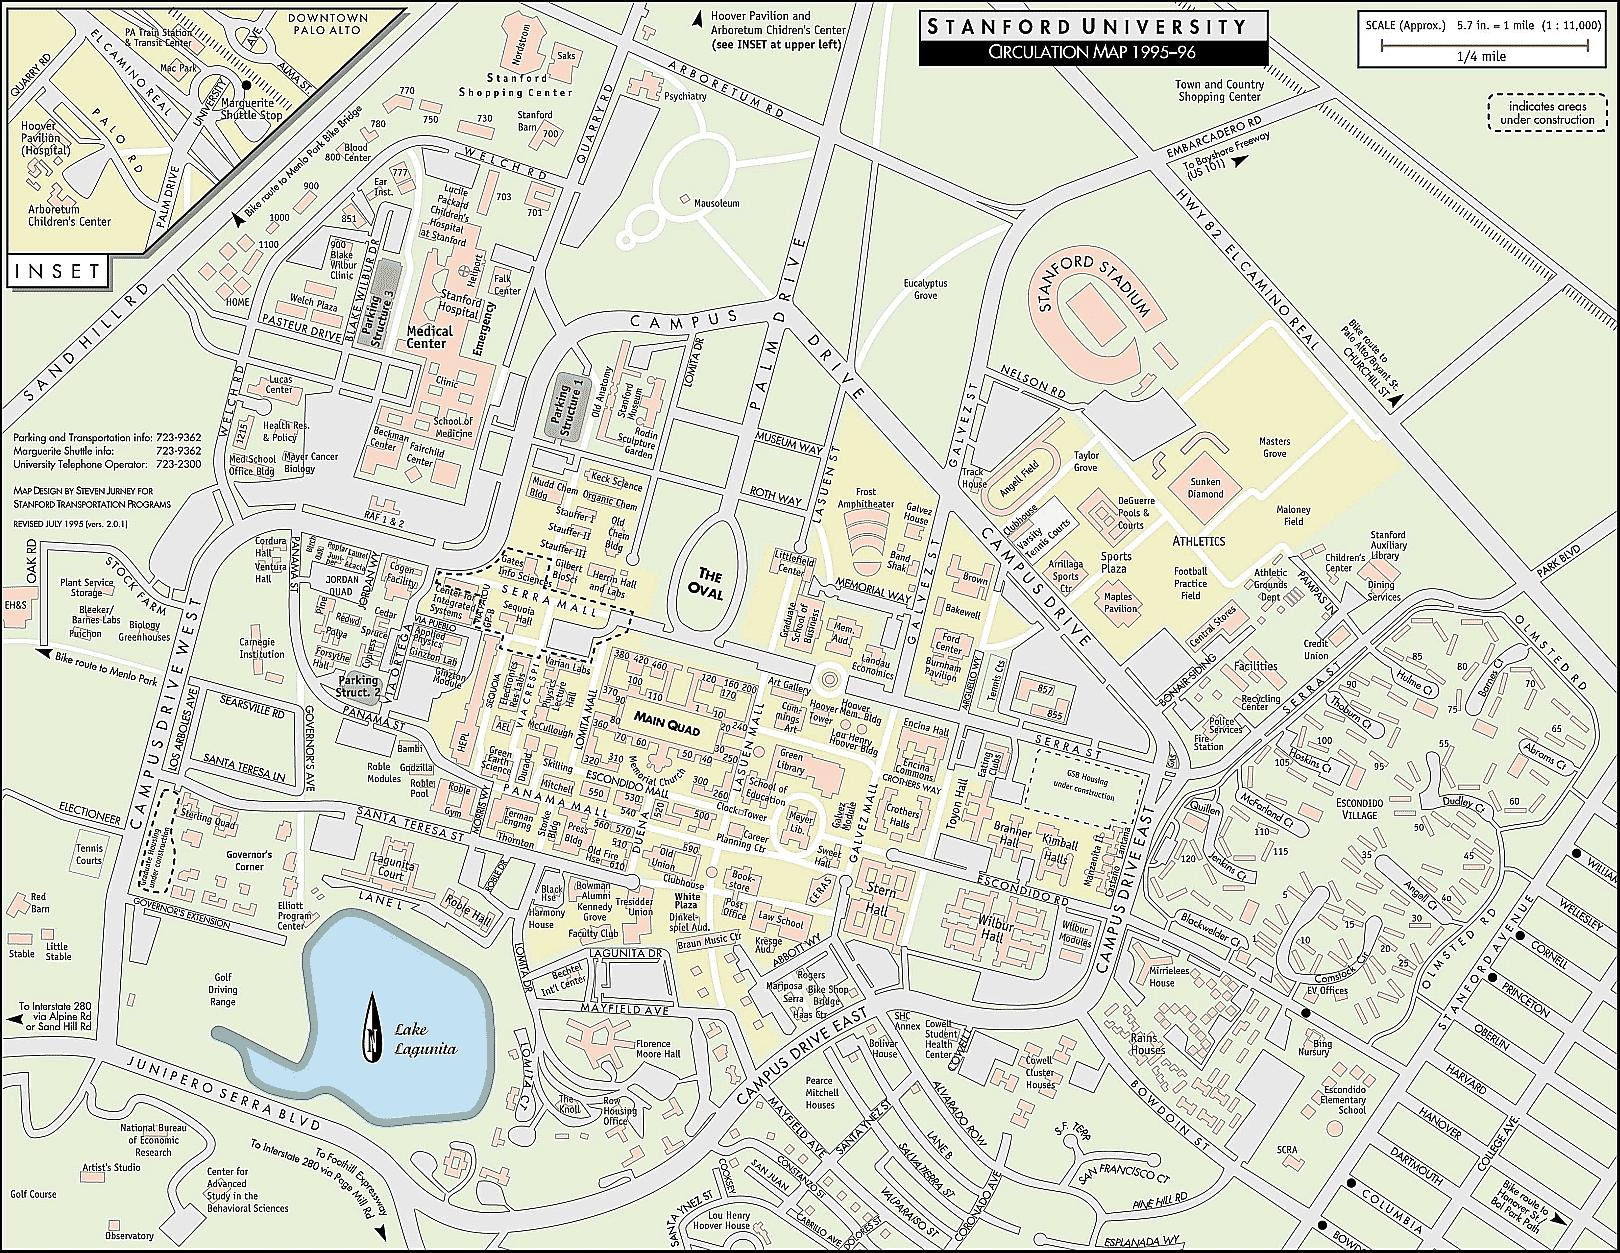 stanford university campus map